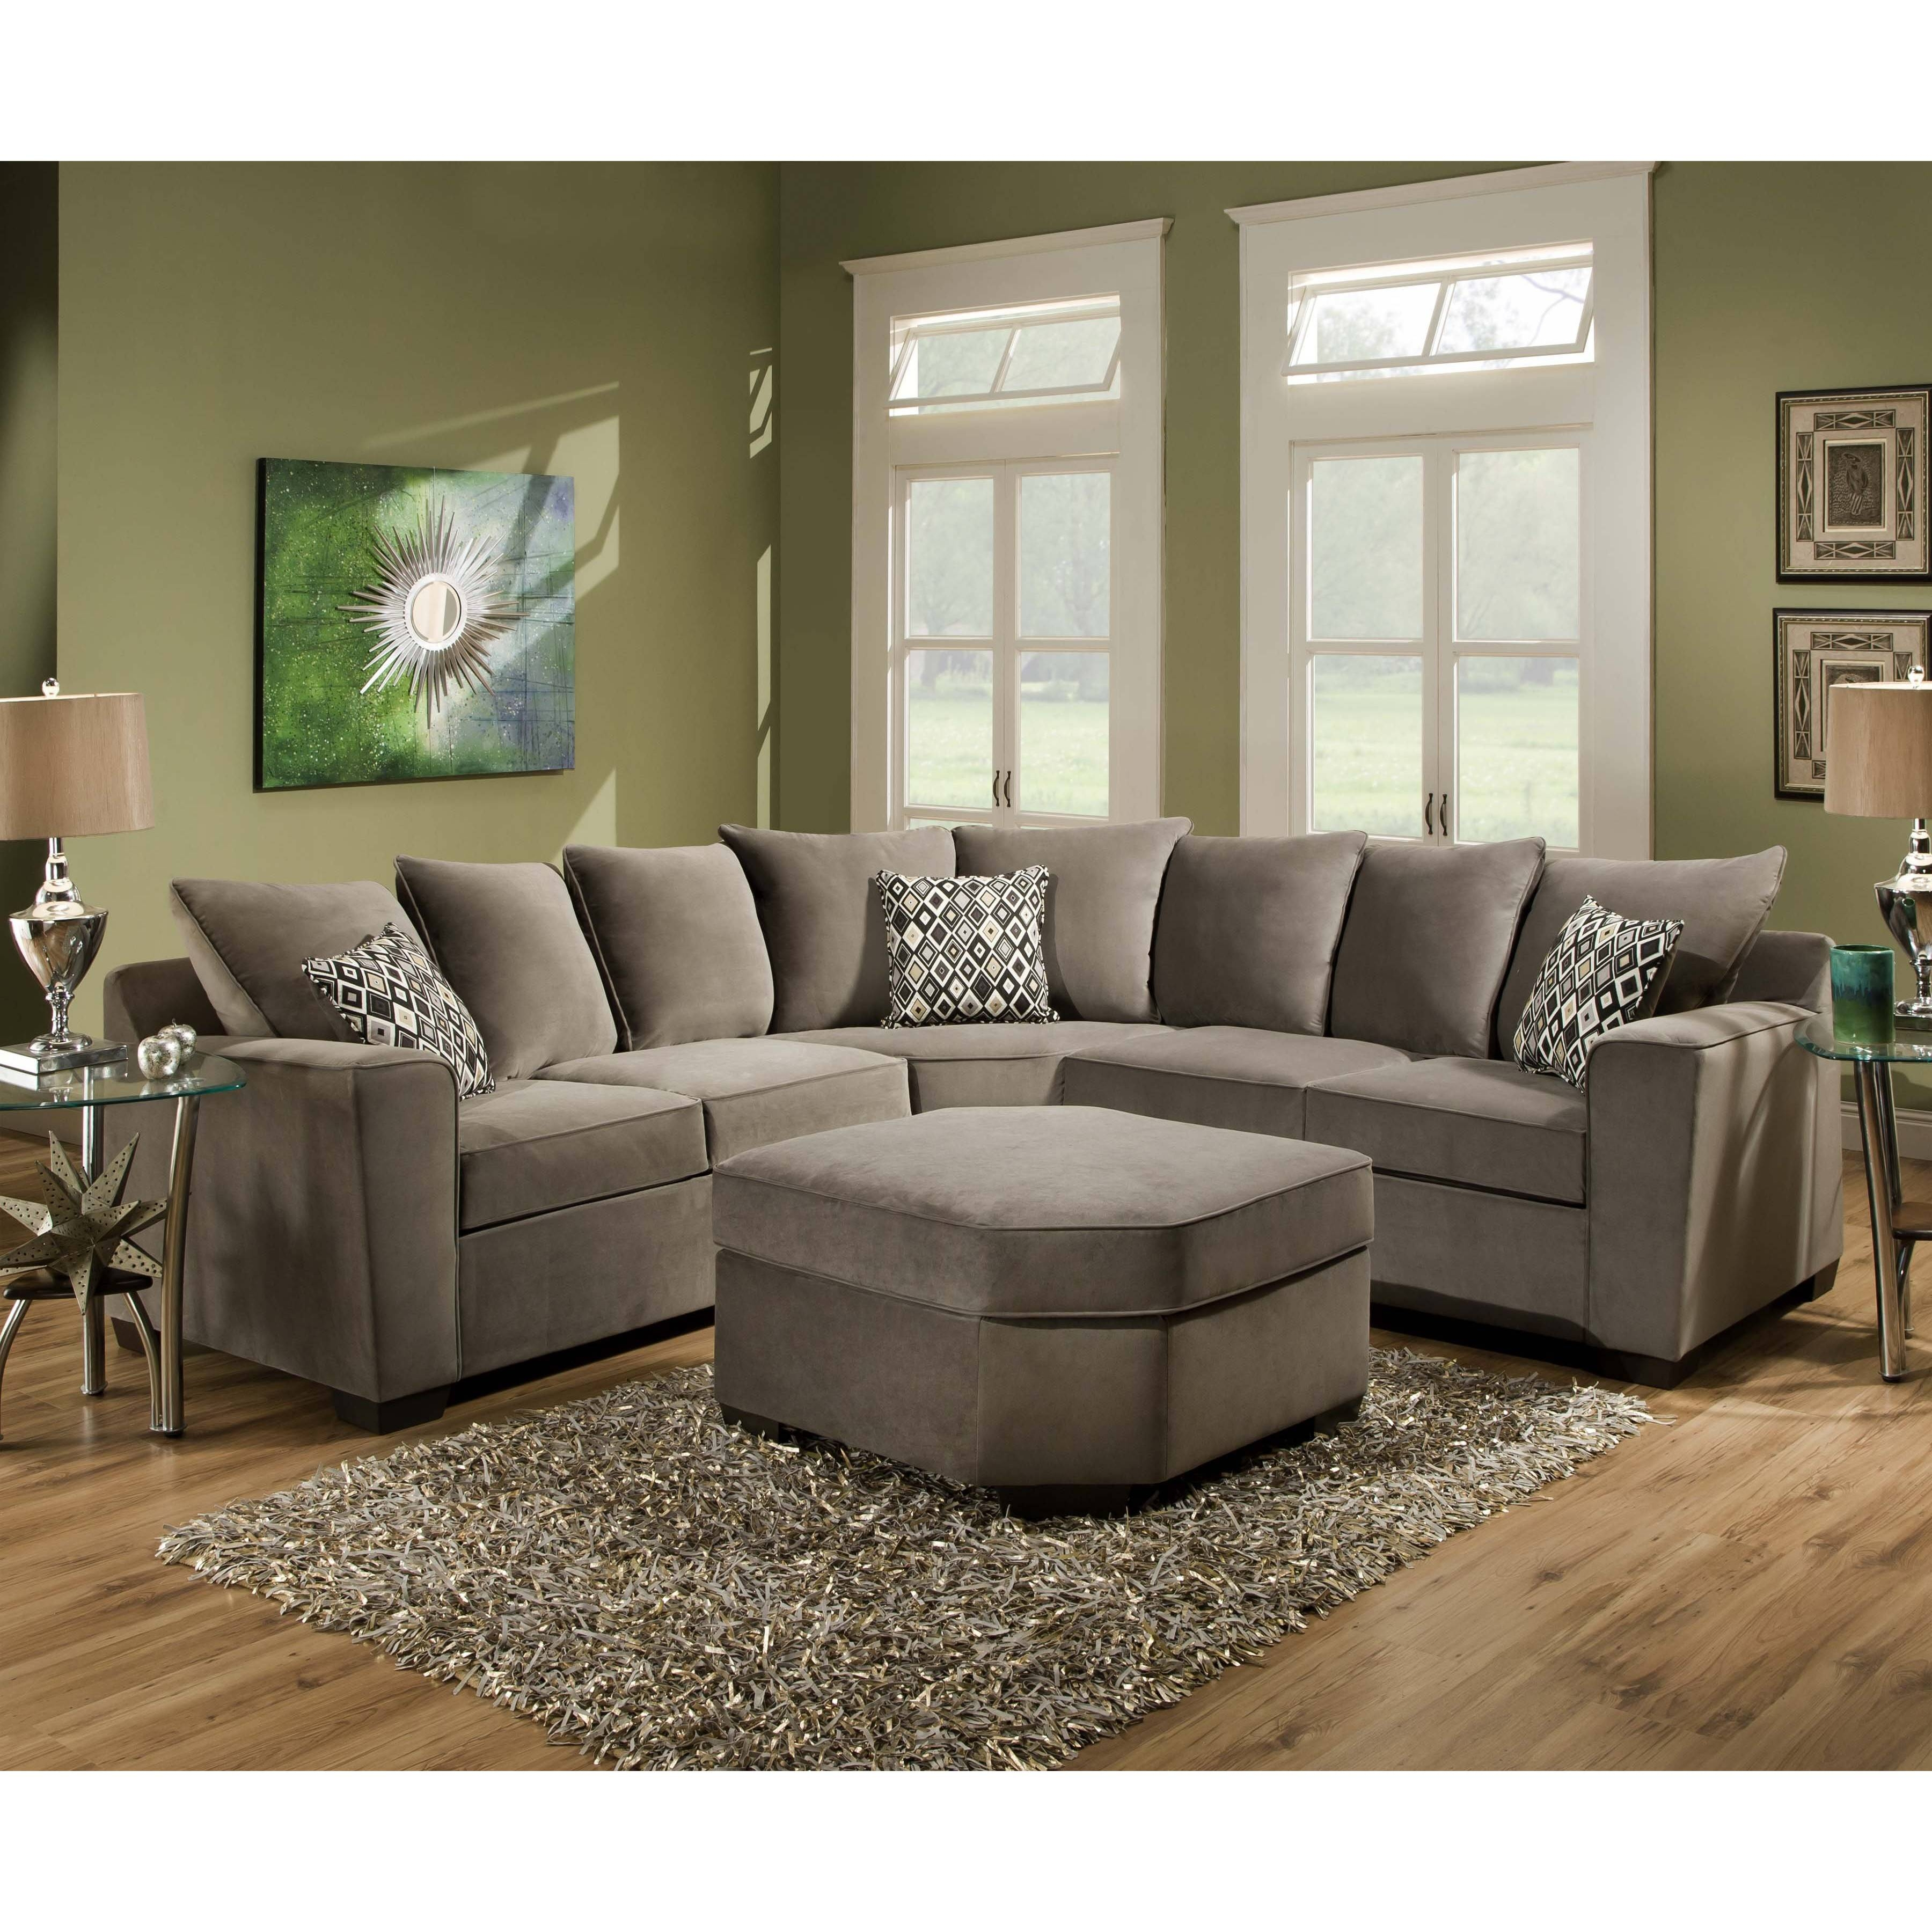 Furniture: Simmons Sectional For Comfortable Seating — Threestems in Big Lots Simmons Sectional Sofas (Image 6 of 15)